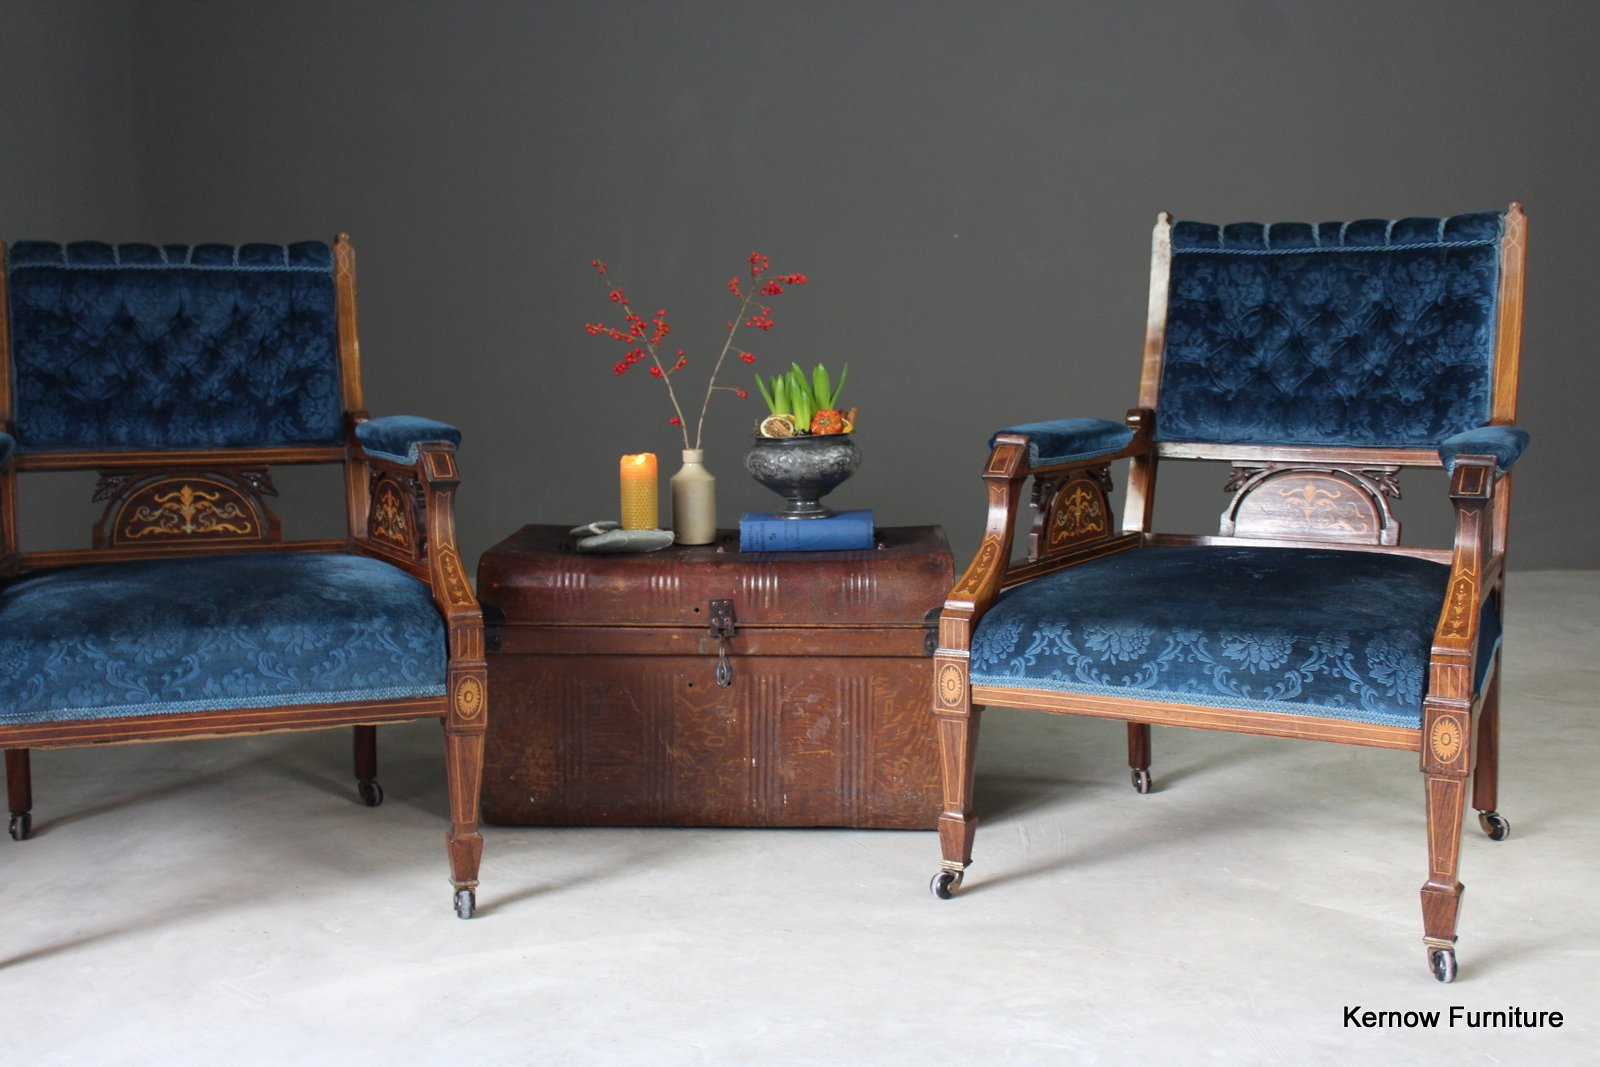 Rosewood; How does CITES affect Antique & Mid Century furniture